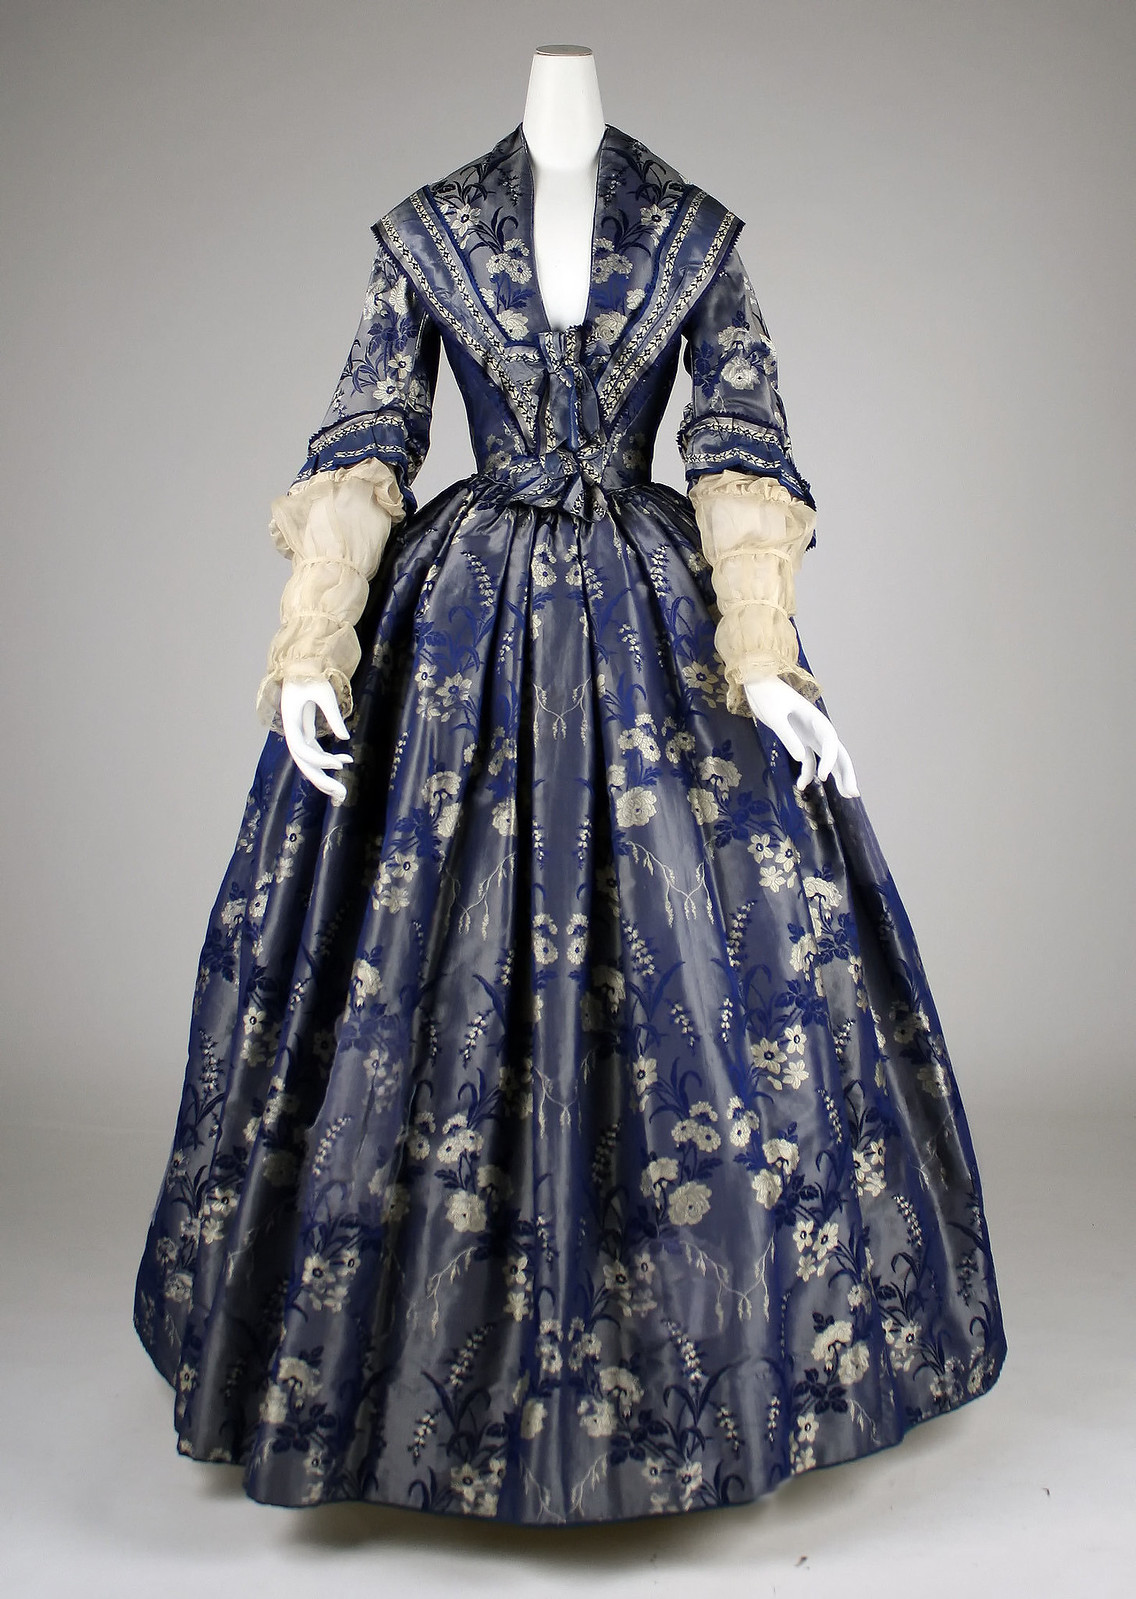 1842, British, silk. metmuseum